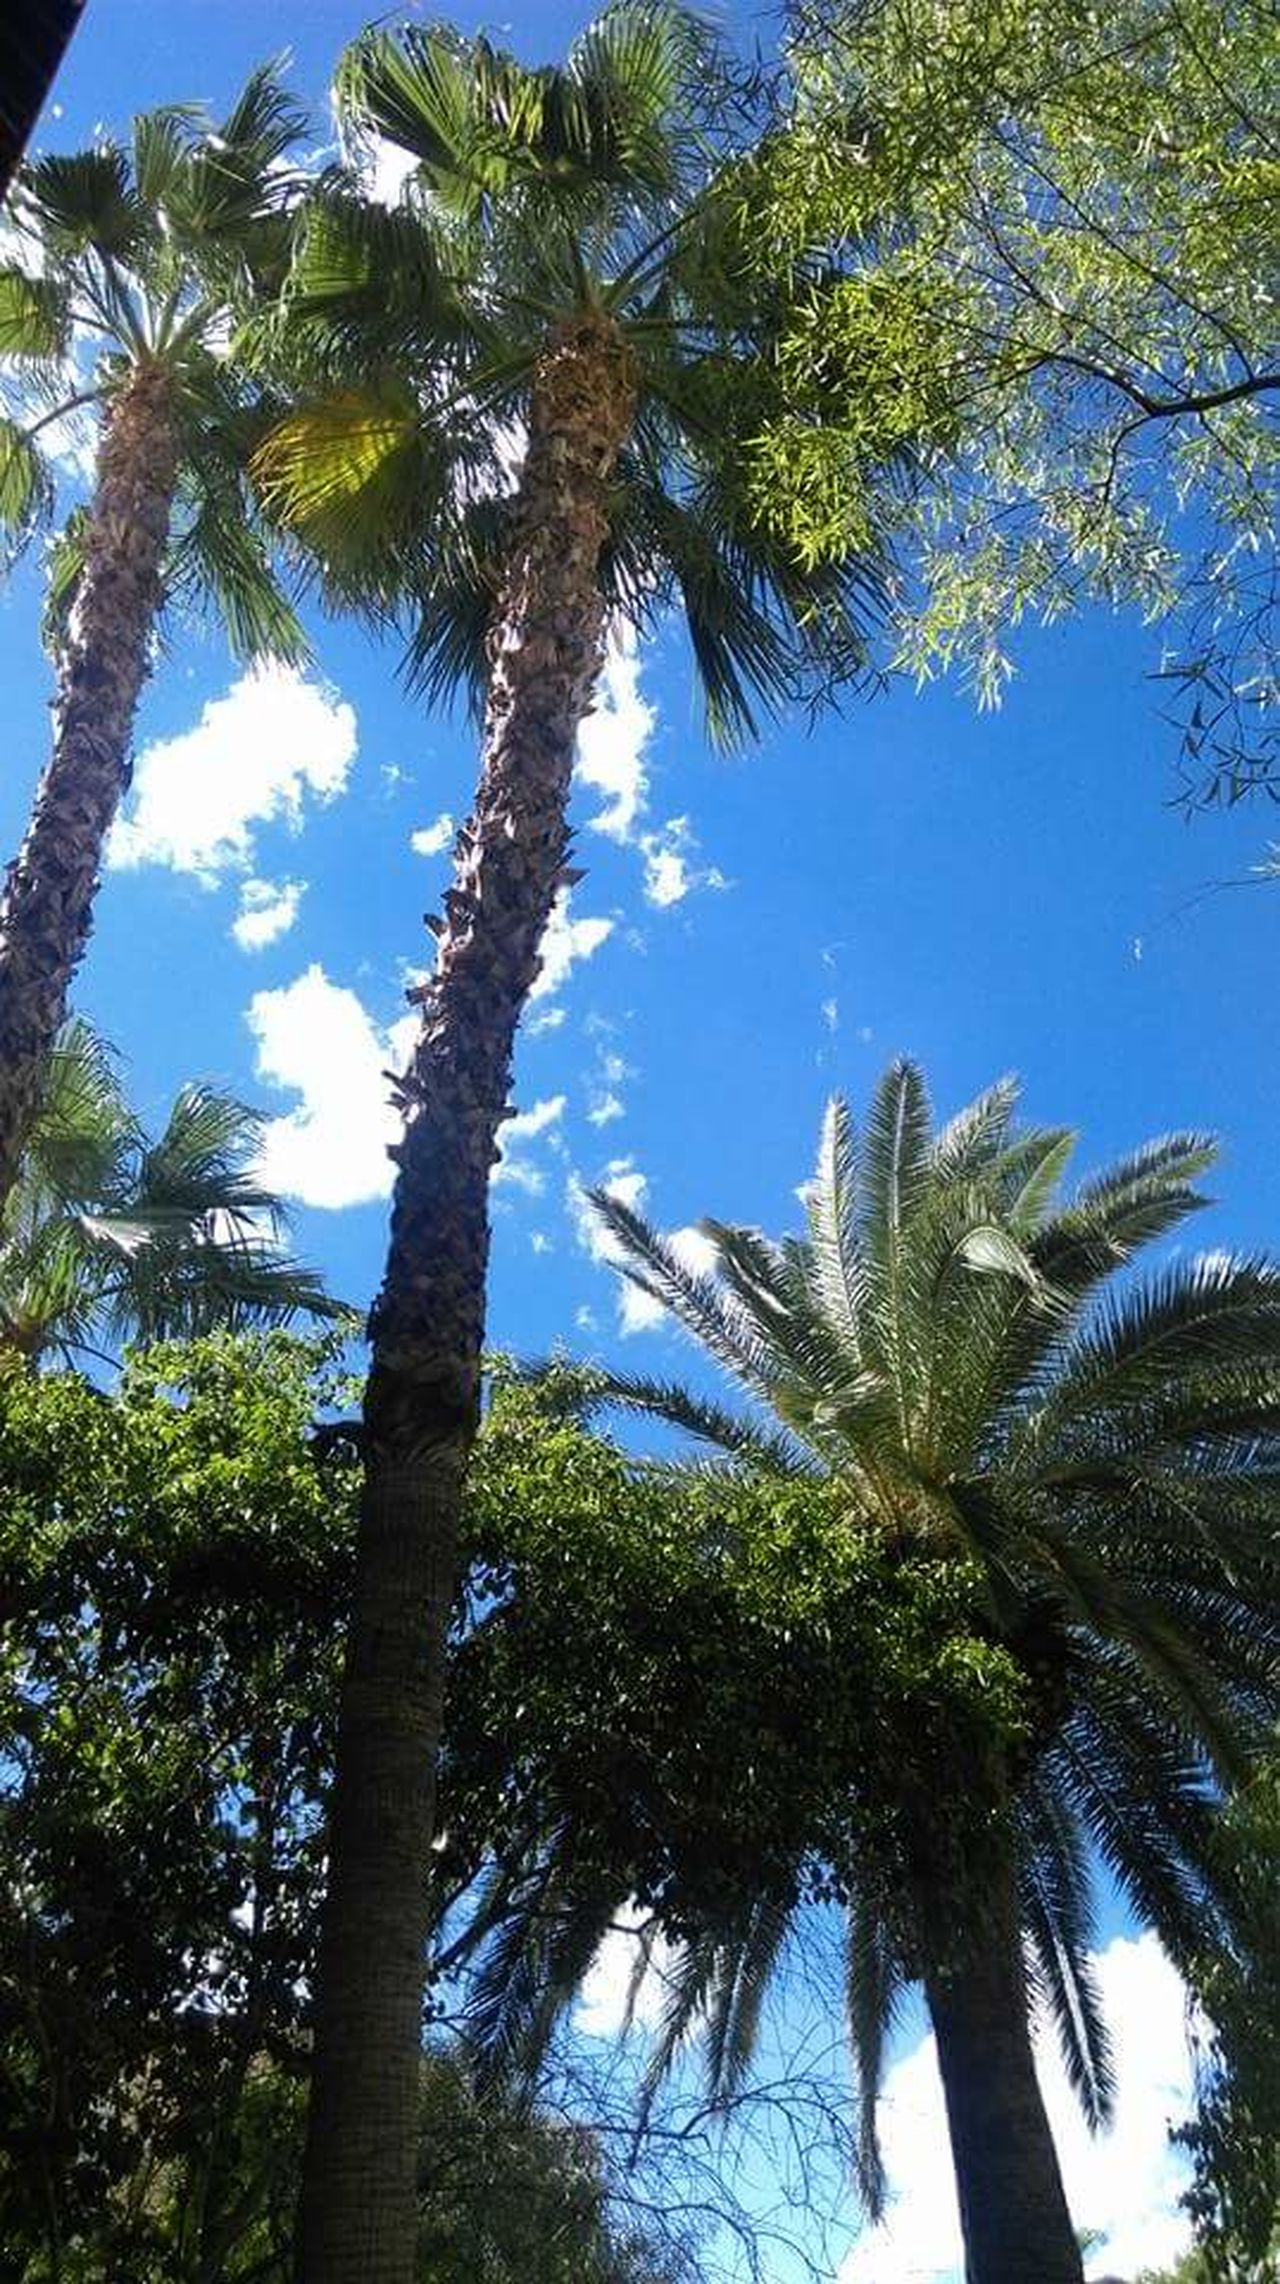 Las Vegas Tuskany Palm Trees Look Up Clouds